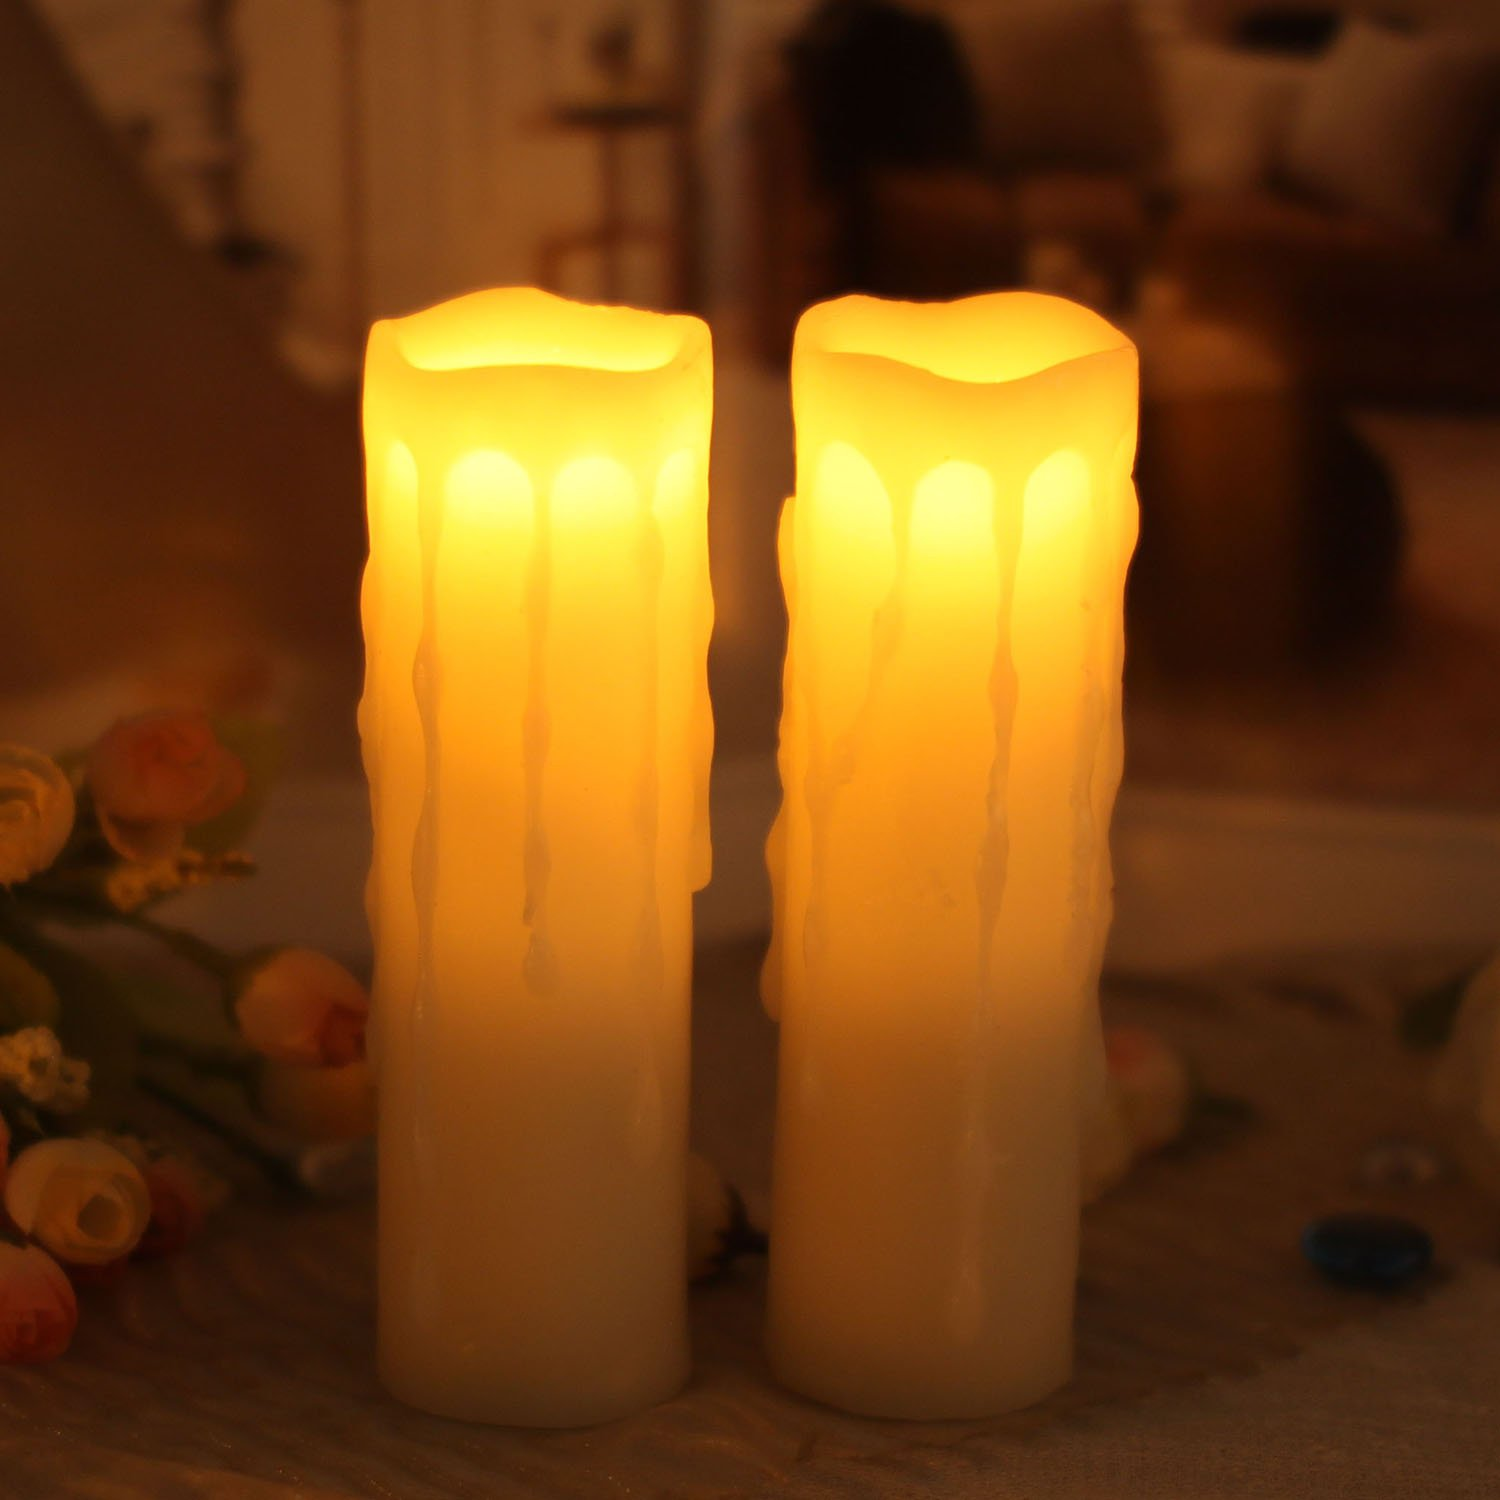 Flameless Led Candles, Battery Operated Wax Candle With Timer for Valentine's Day and Home Decor,1.75x6 Inches,Ivory,Pack of 2